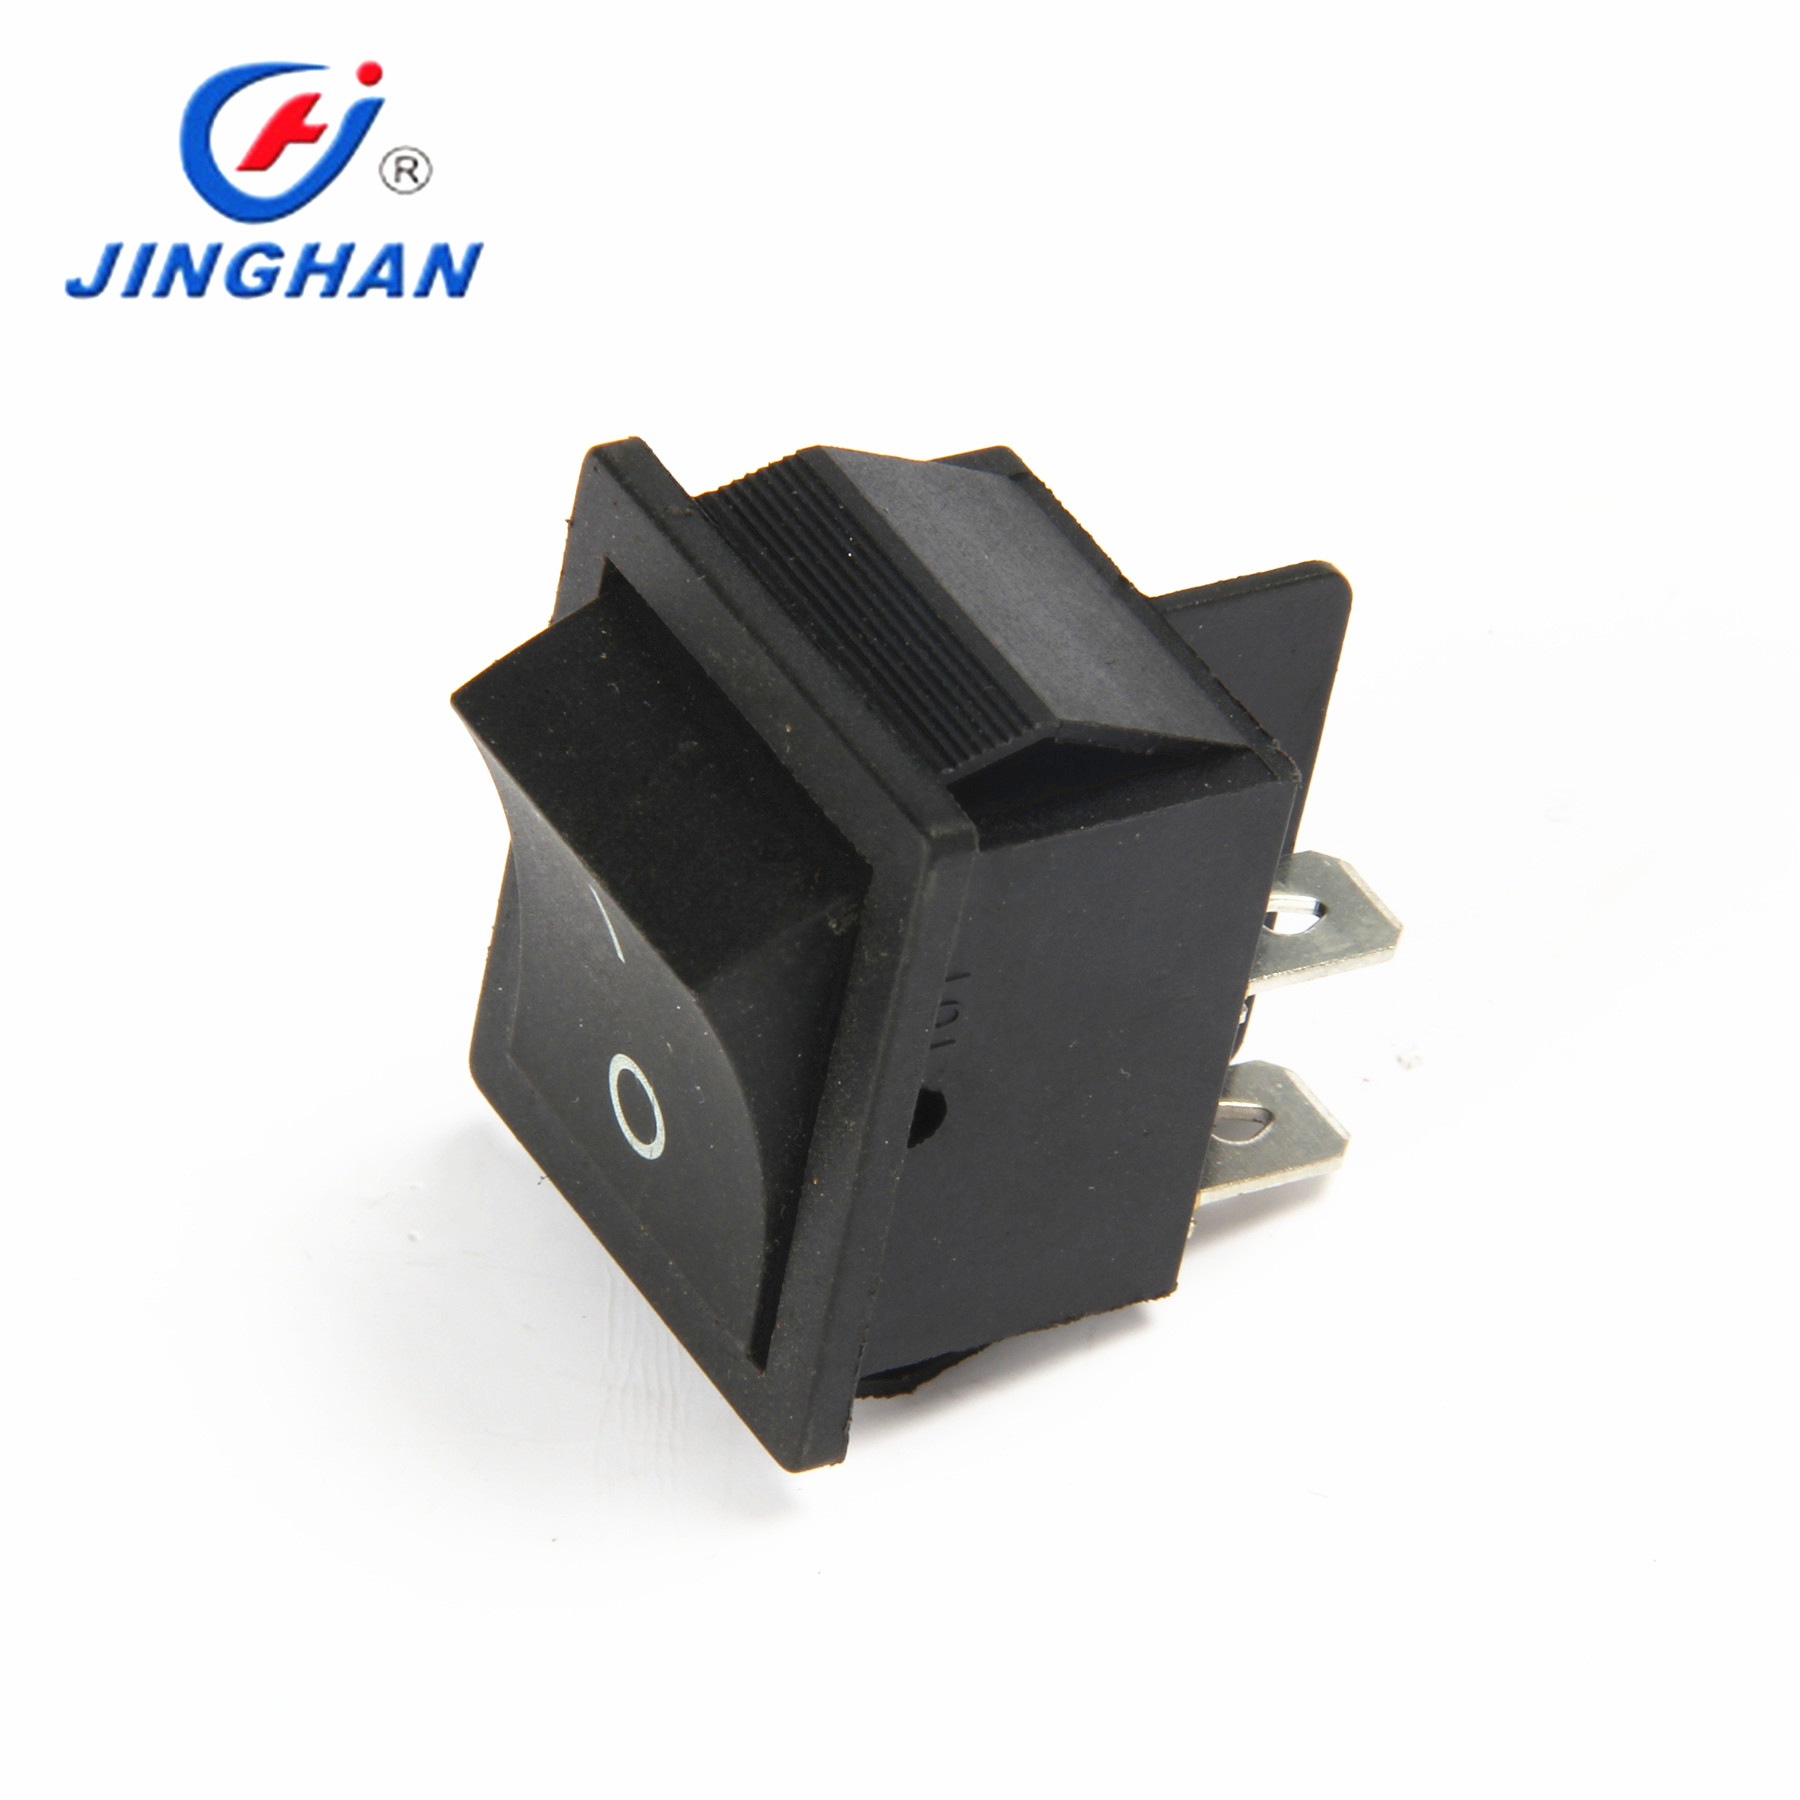 high quality wiring diagram black 4 pin on off 30*22mm rocker switch buy 4 pin on off rocker switch,30*22mm rocker switch,rocker switch wiring 4 Pin Ignition Switch Wiring Diagram